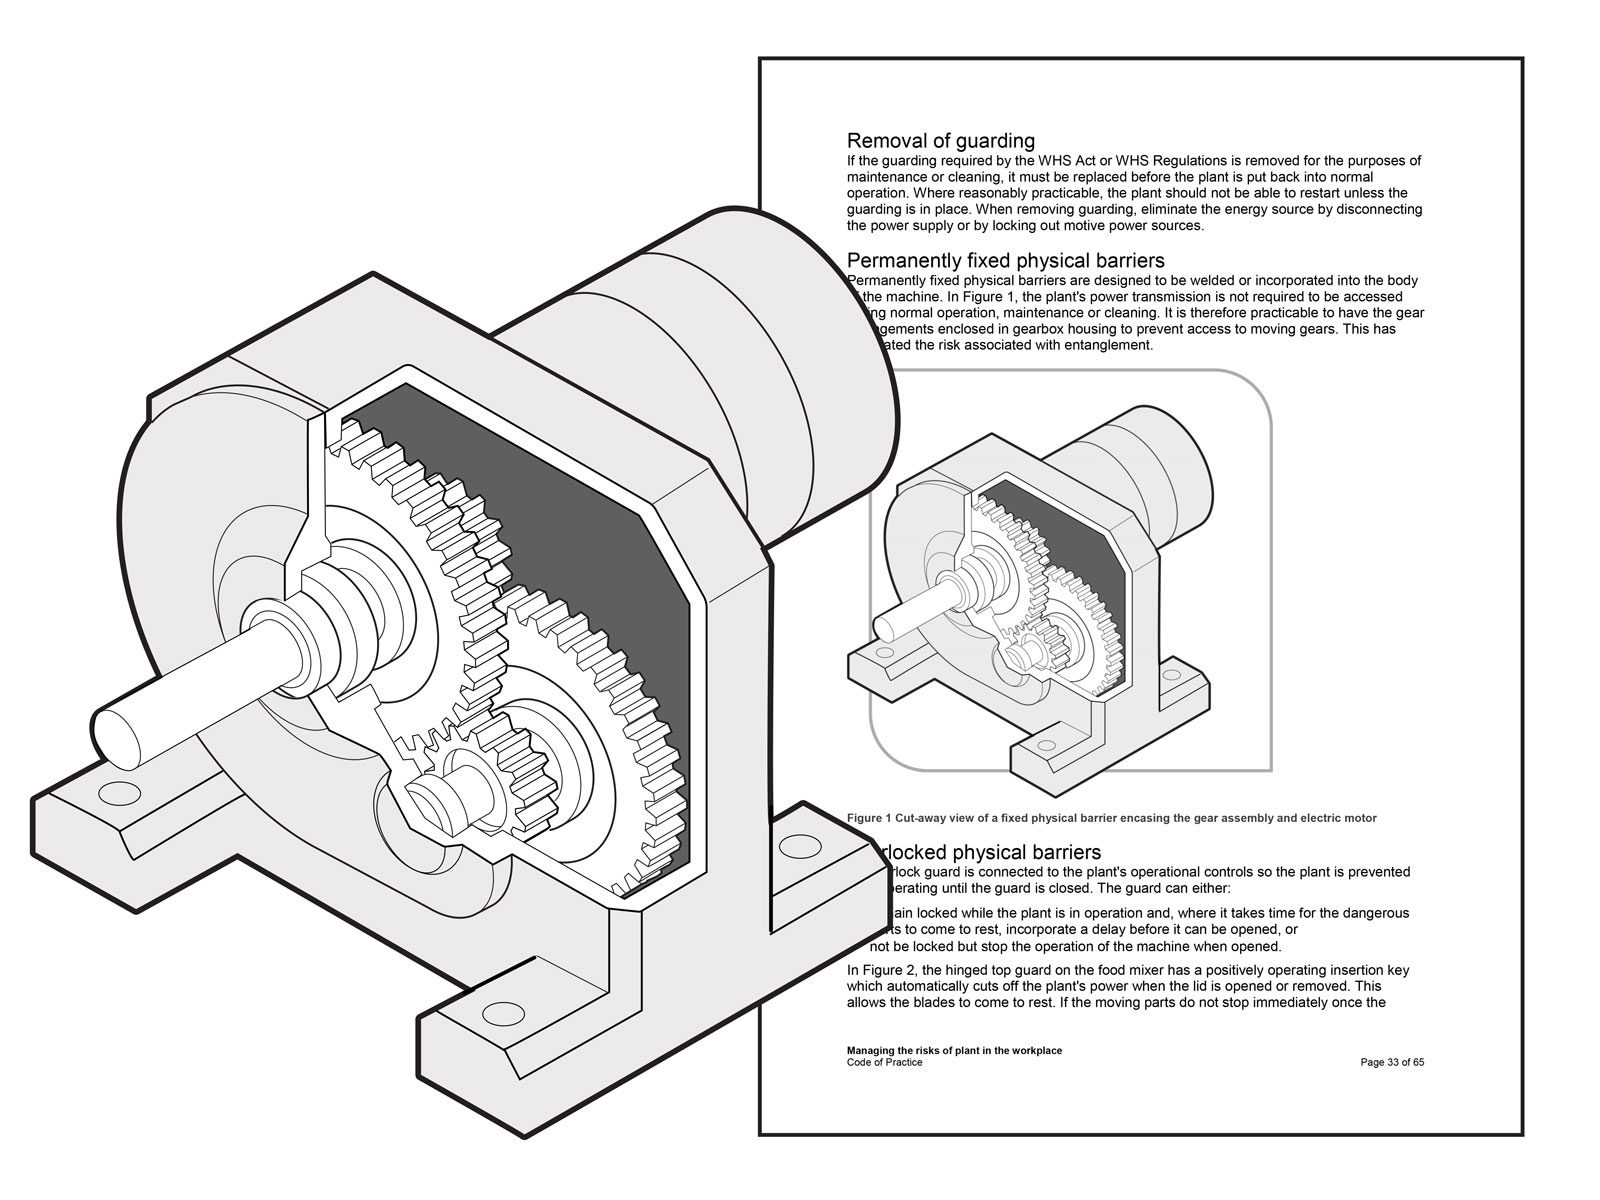 Cutaway of a fixed barrier encasing a gear assembly